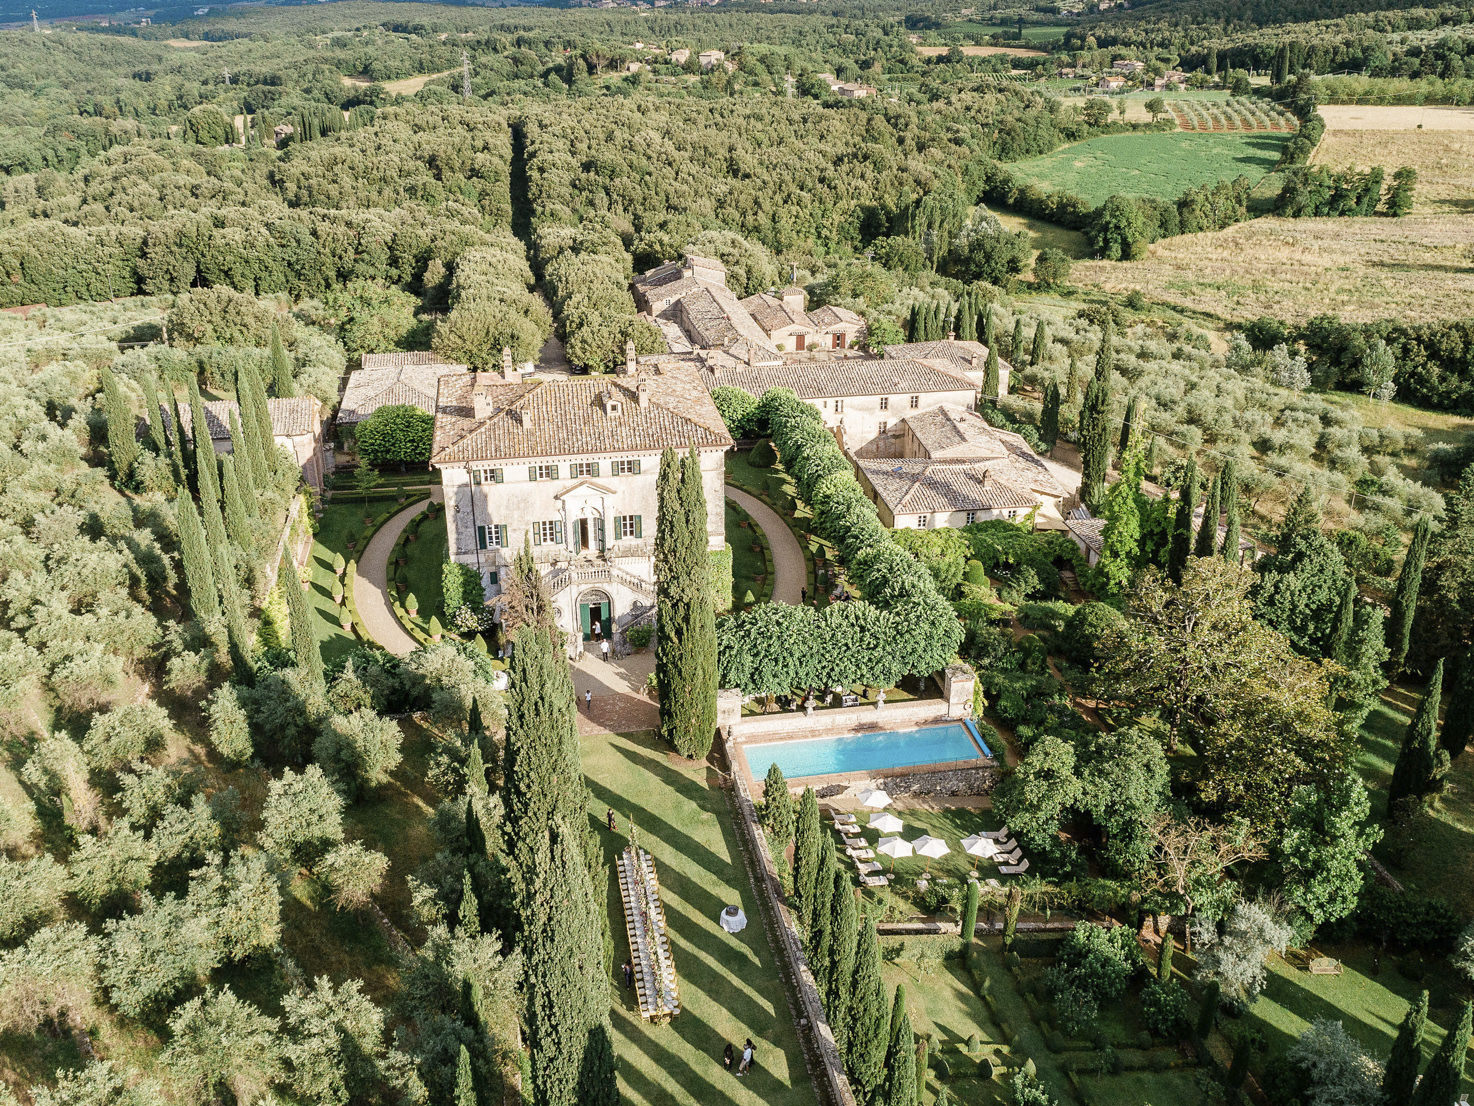 Aerial view of Villa Cetinale with gardens and pool